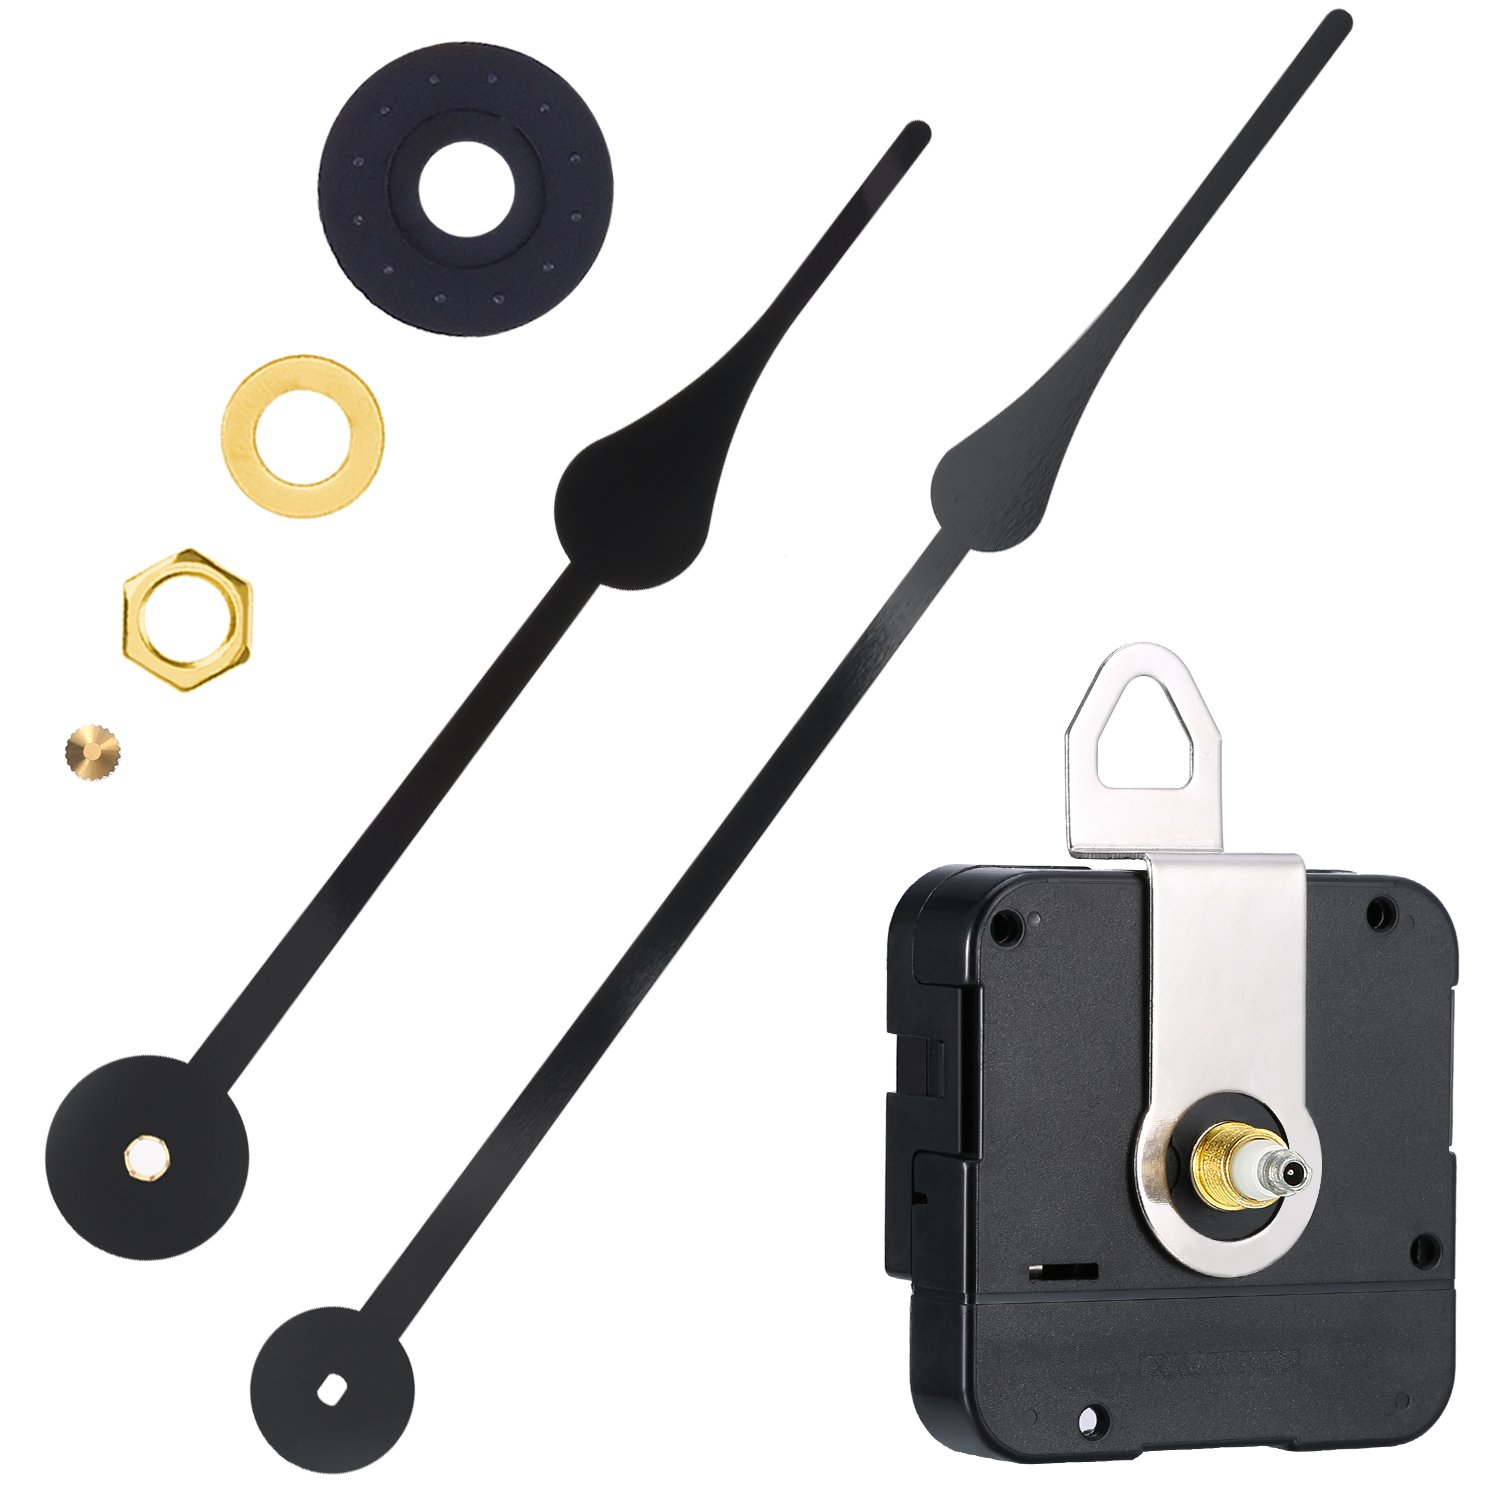 WILLBOND High Torque Clock Movement Replacement Mechanism with Clock Hands to Fit Dials Up to 56 cm 22 Inches in Diameter